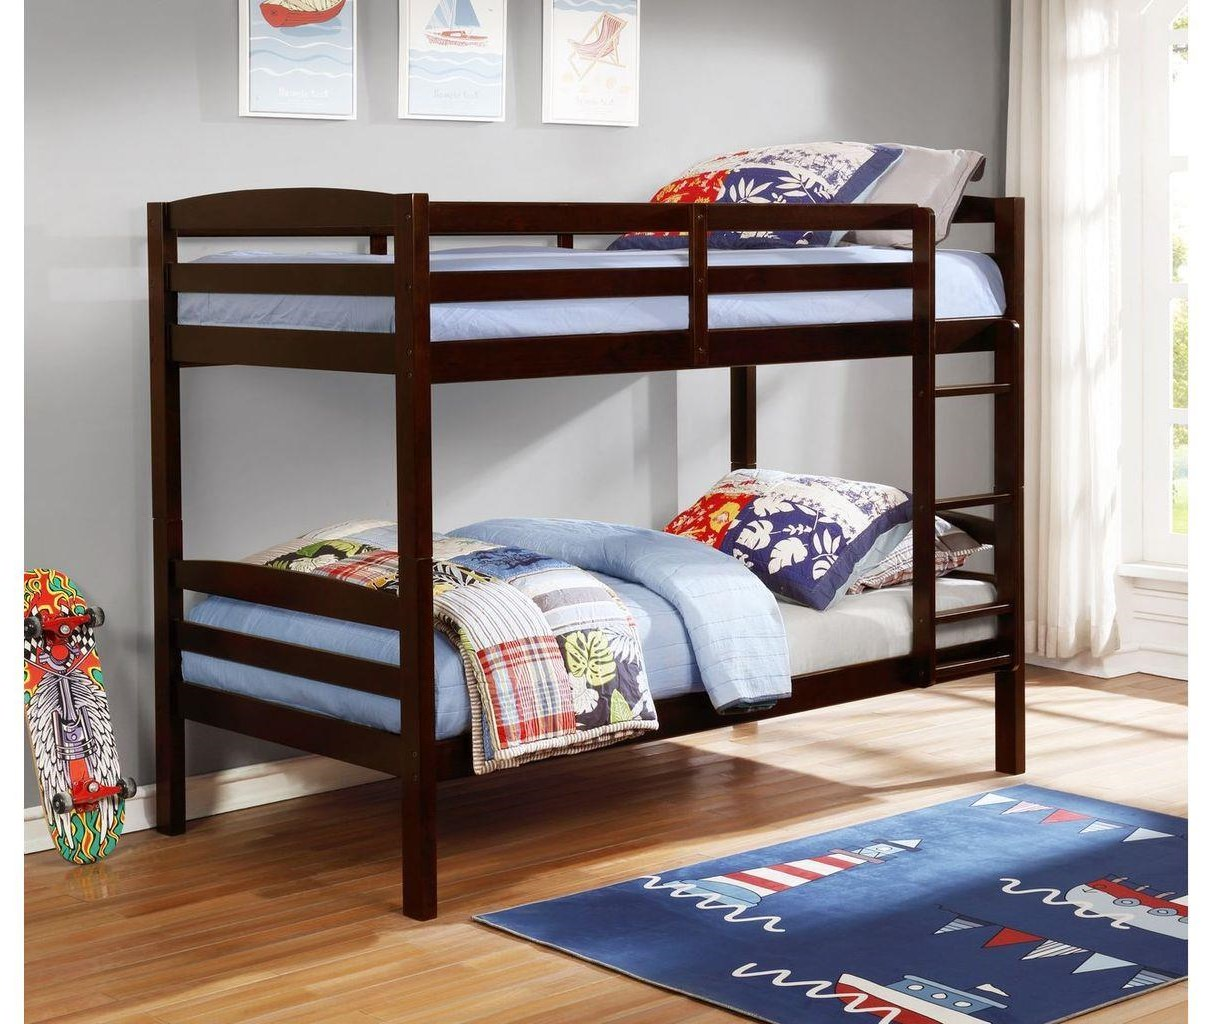 CB80 Espresso Twin over Twin Bunk Bed by Lifestyle at Furniture Fair - North Carolina